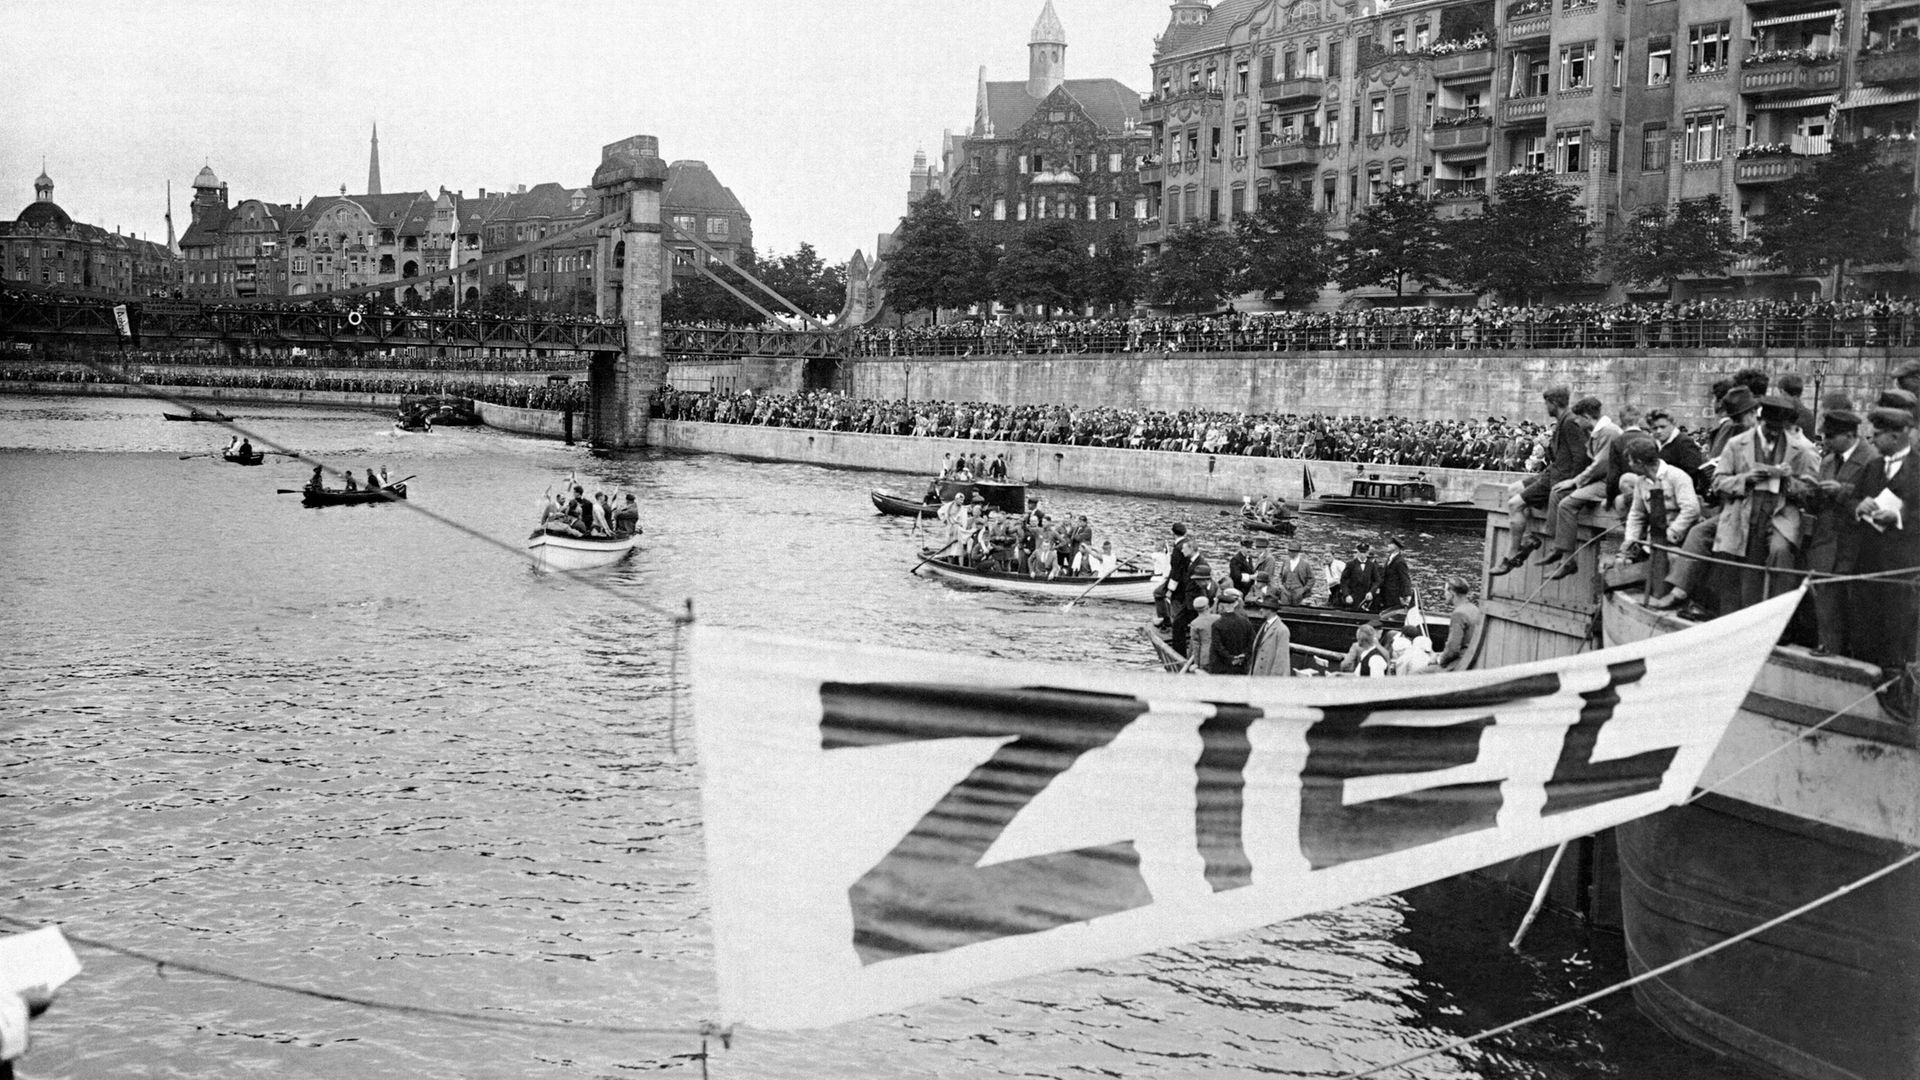 A city at play... Berliners flock to the river for a swimming event in the heart of the city in 1928 - Credit: Gamma-Keystone via Getty Images